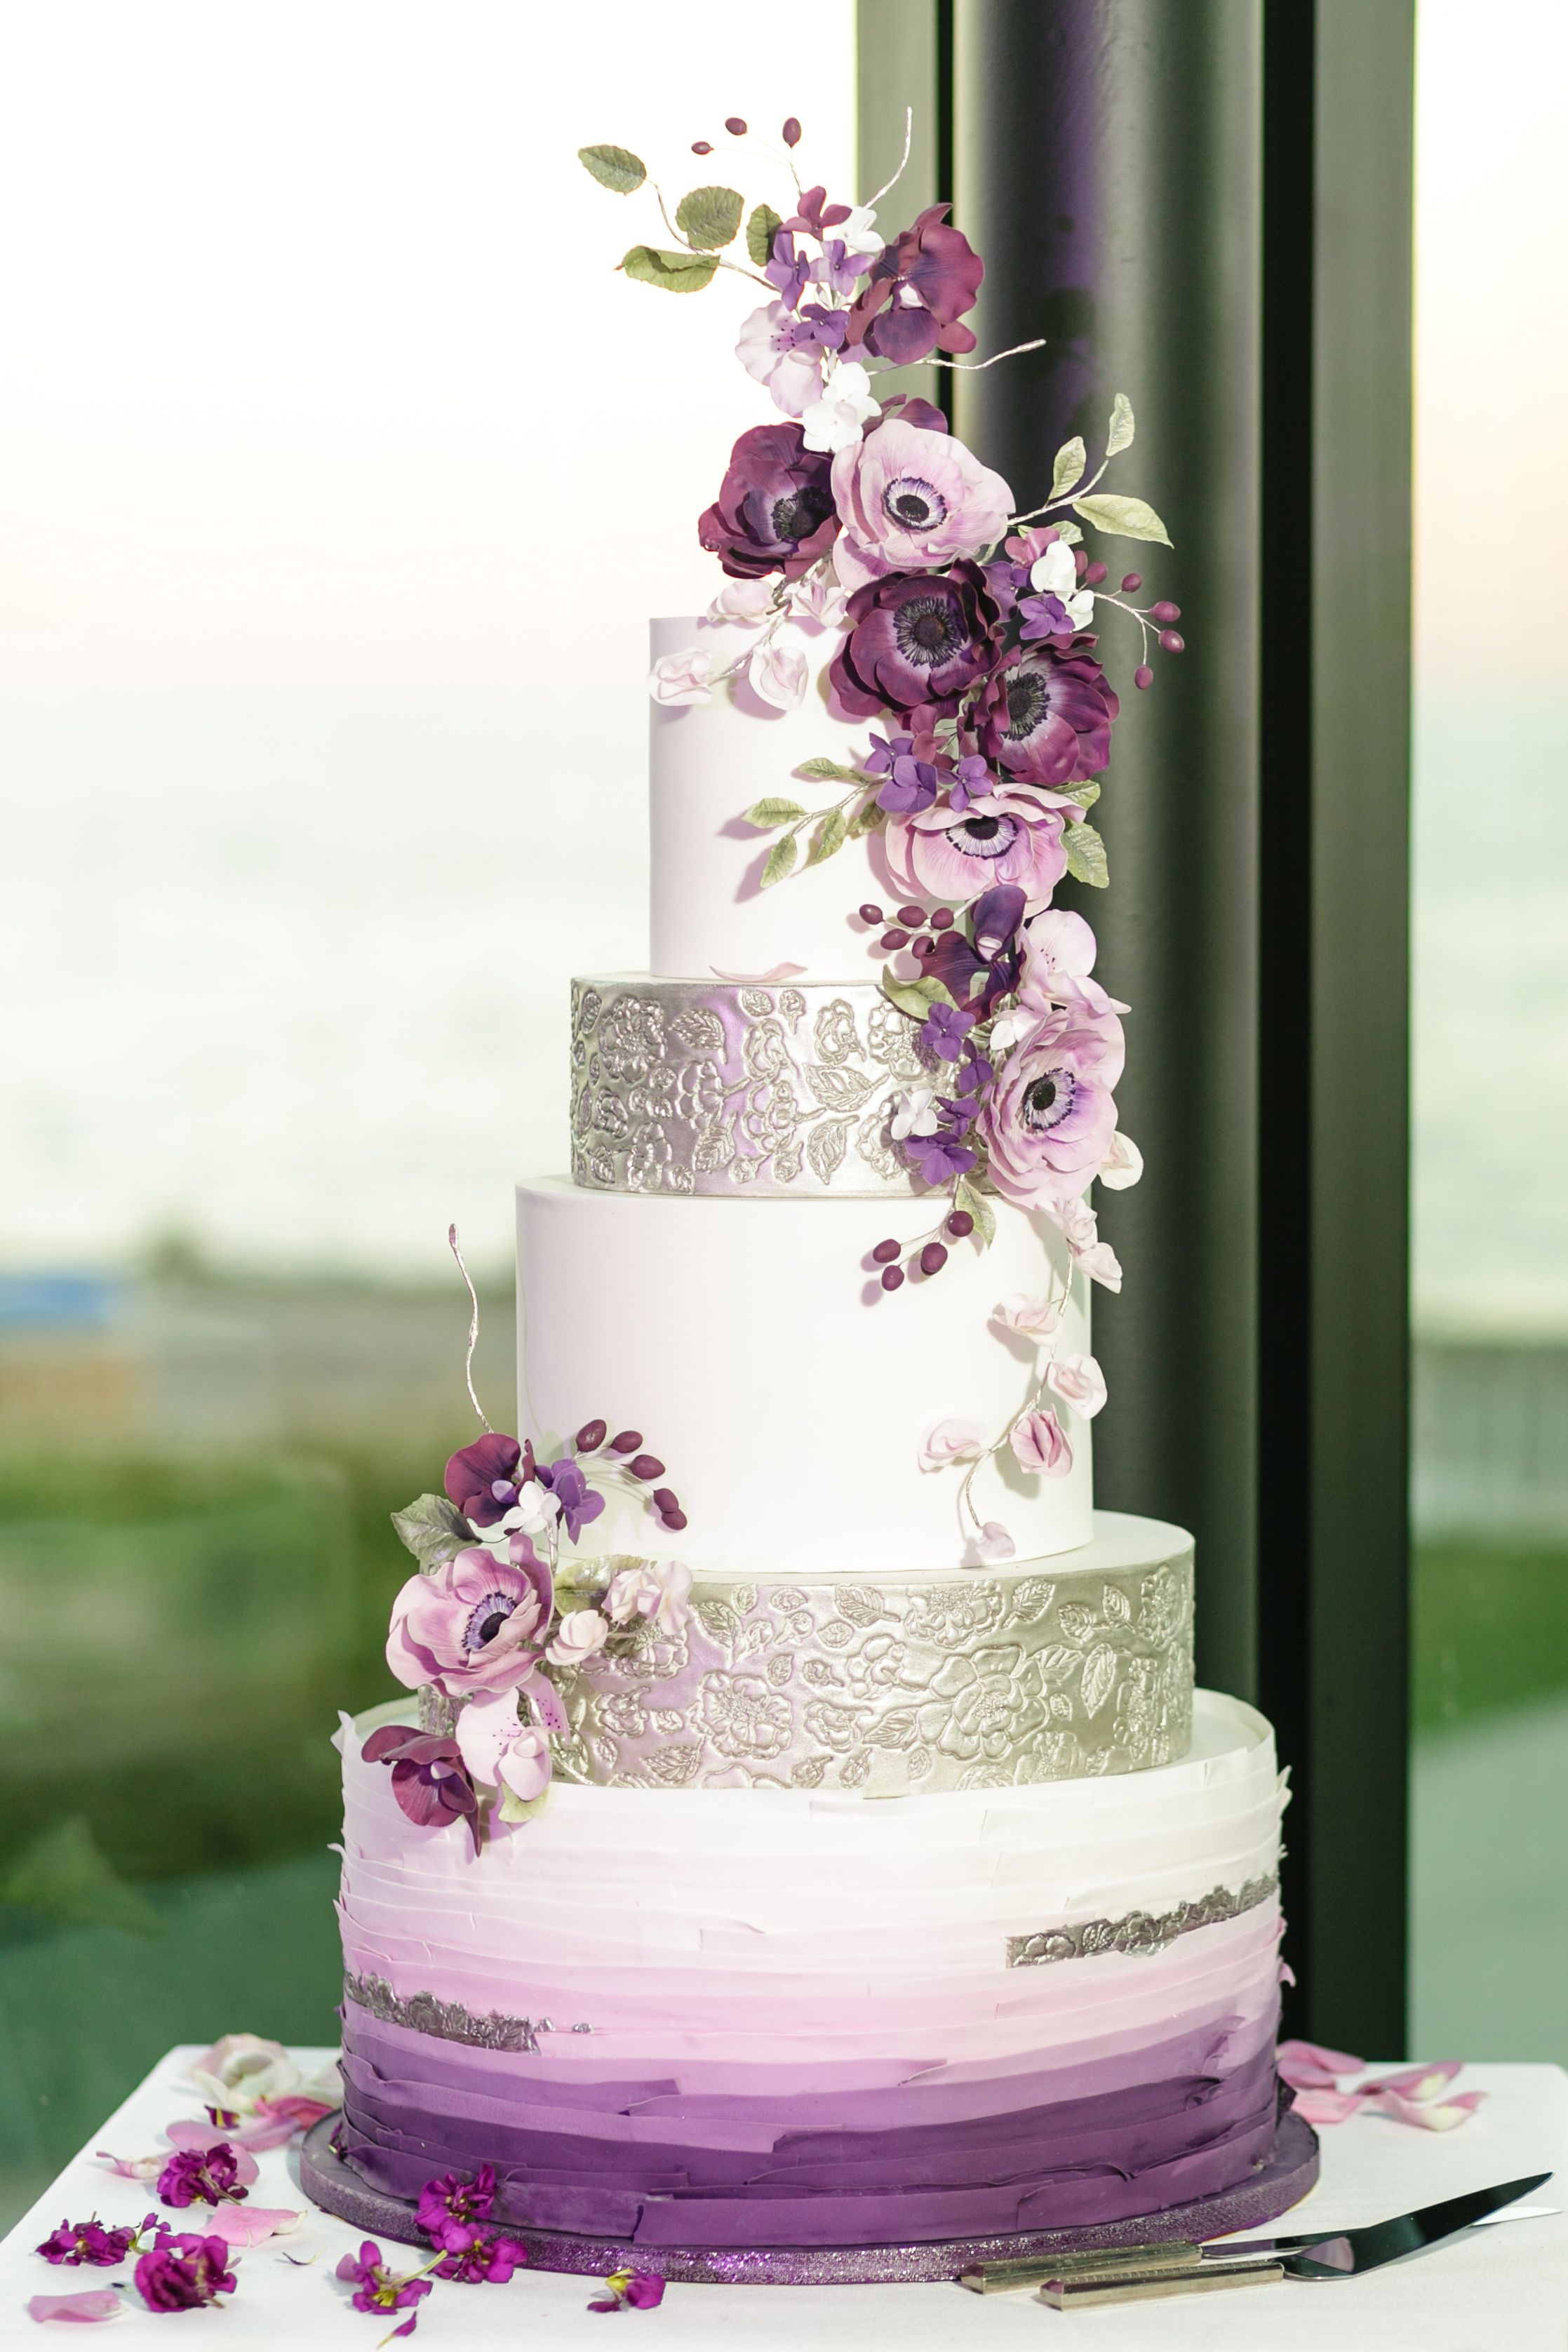 Violet and white wedding cake - purple cake - purple wedding - ombre ...